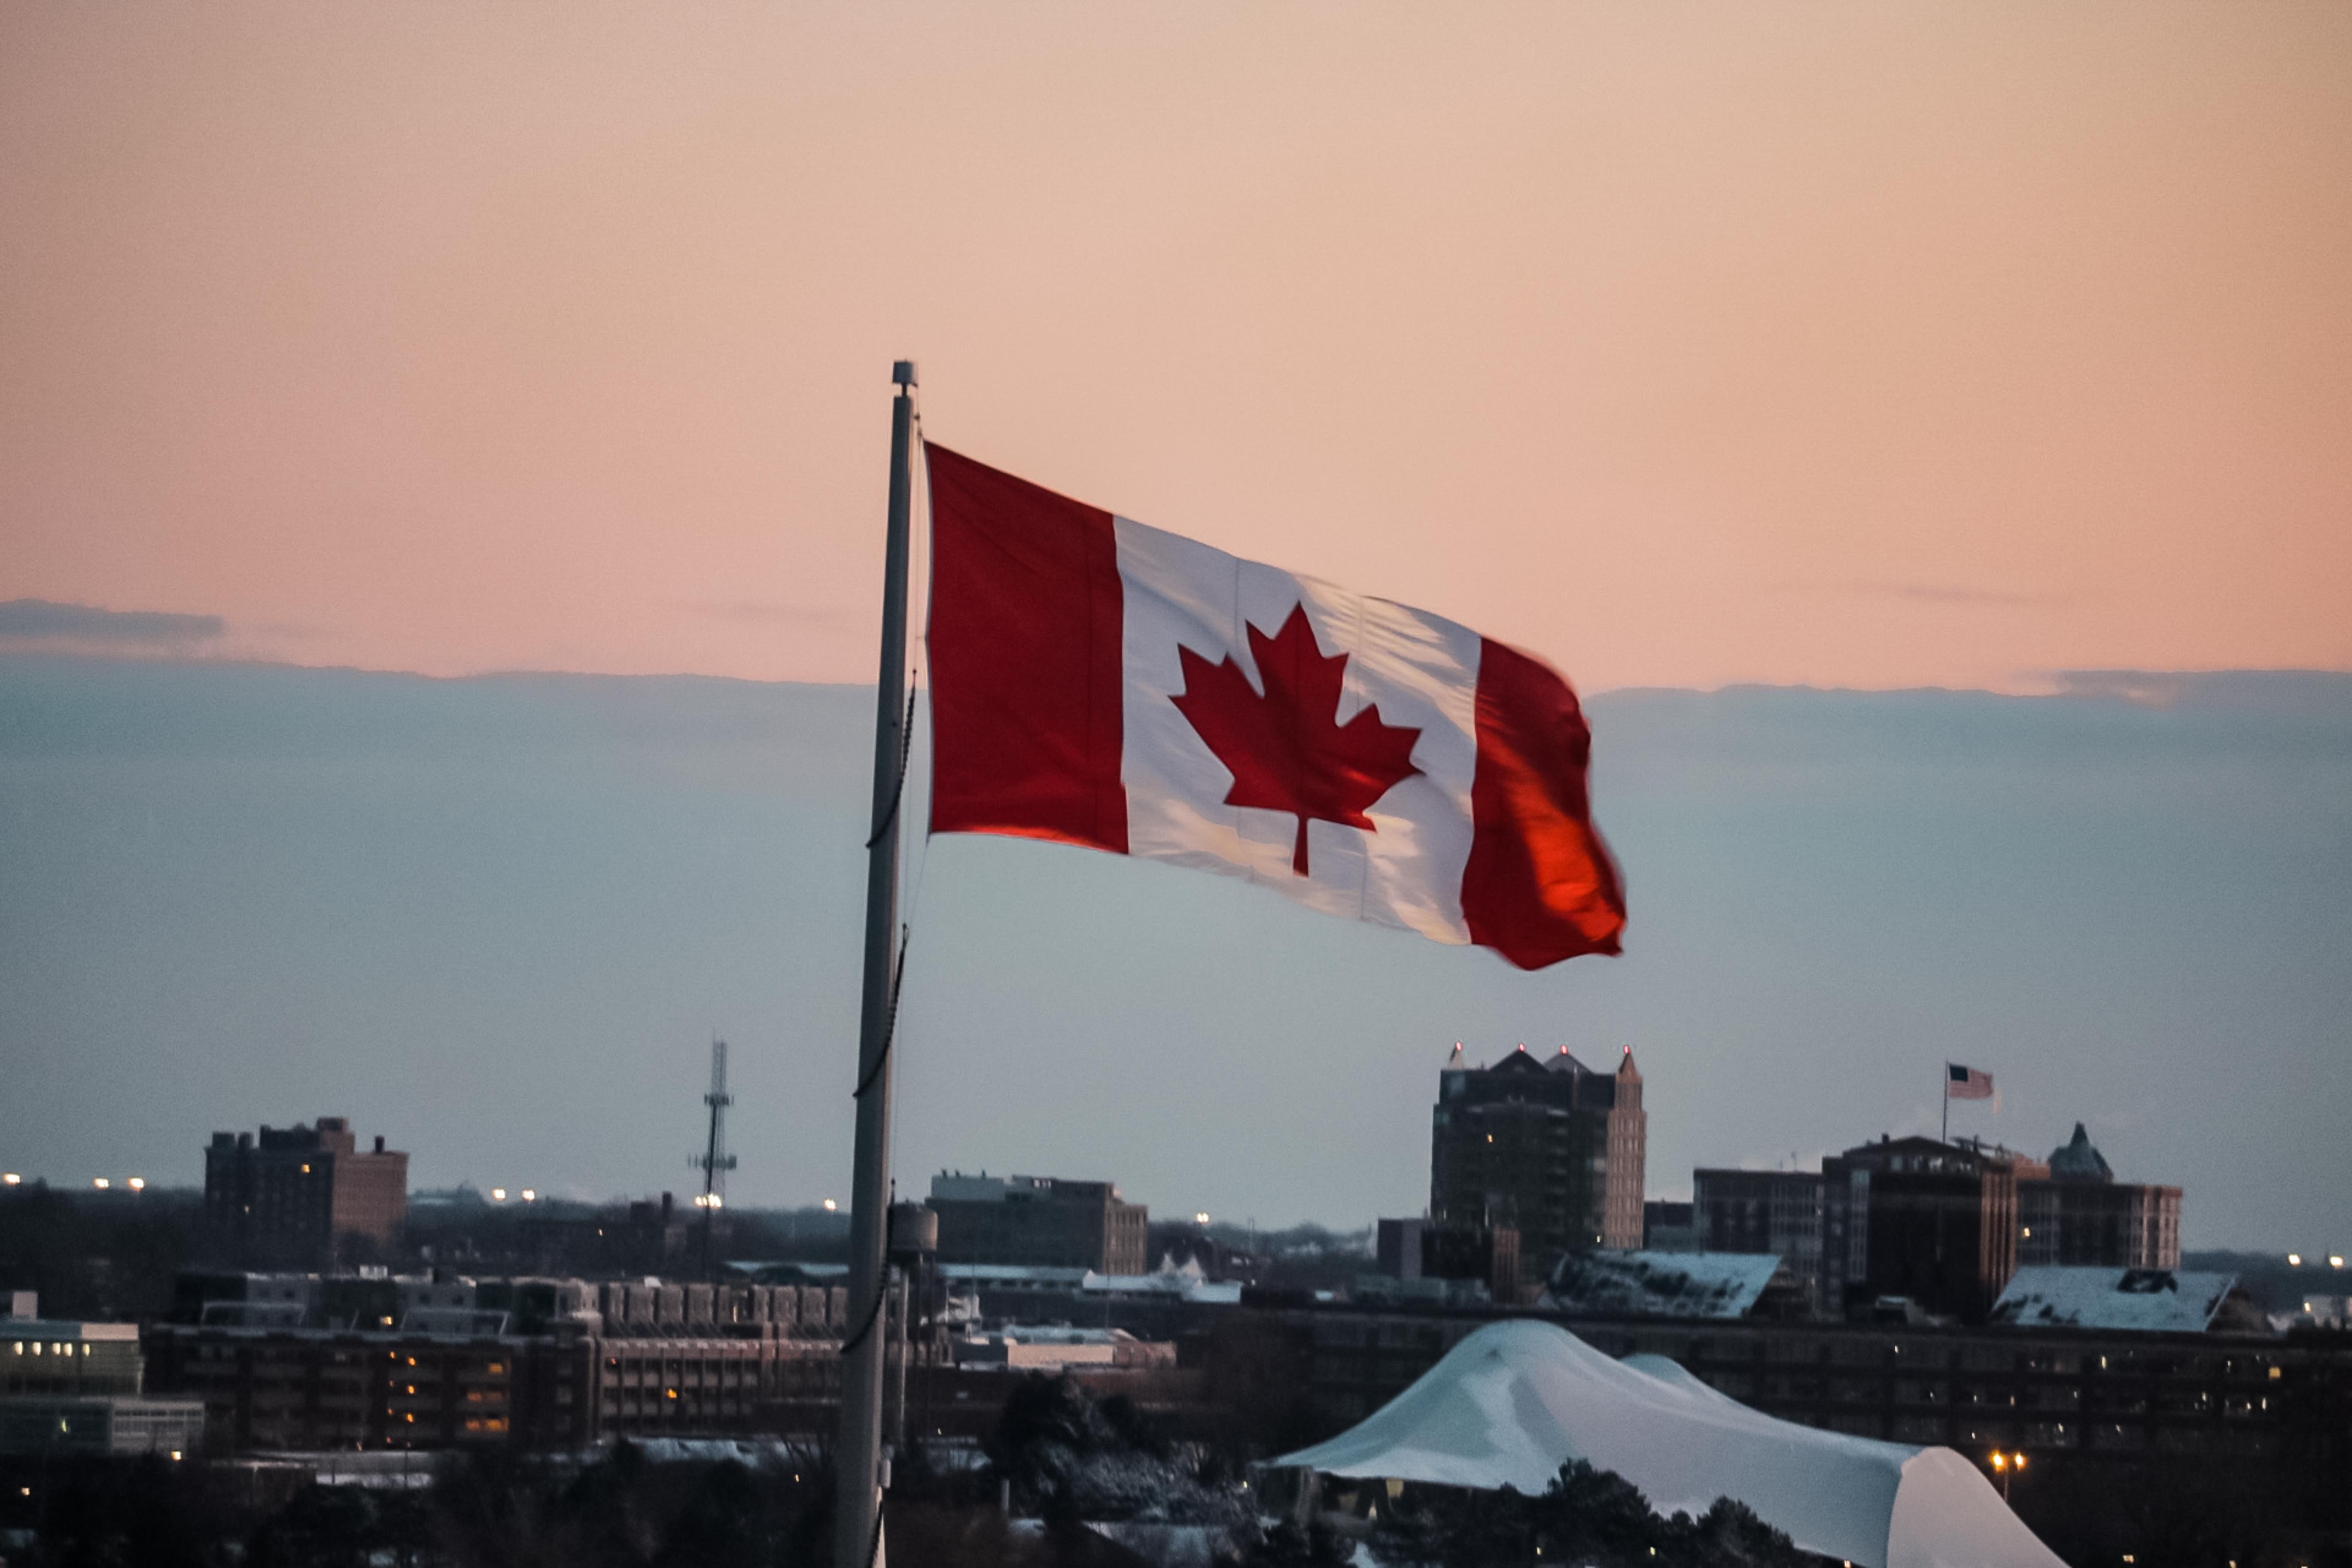 BoC surveys show expectations for gradual recovery